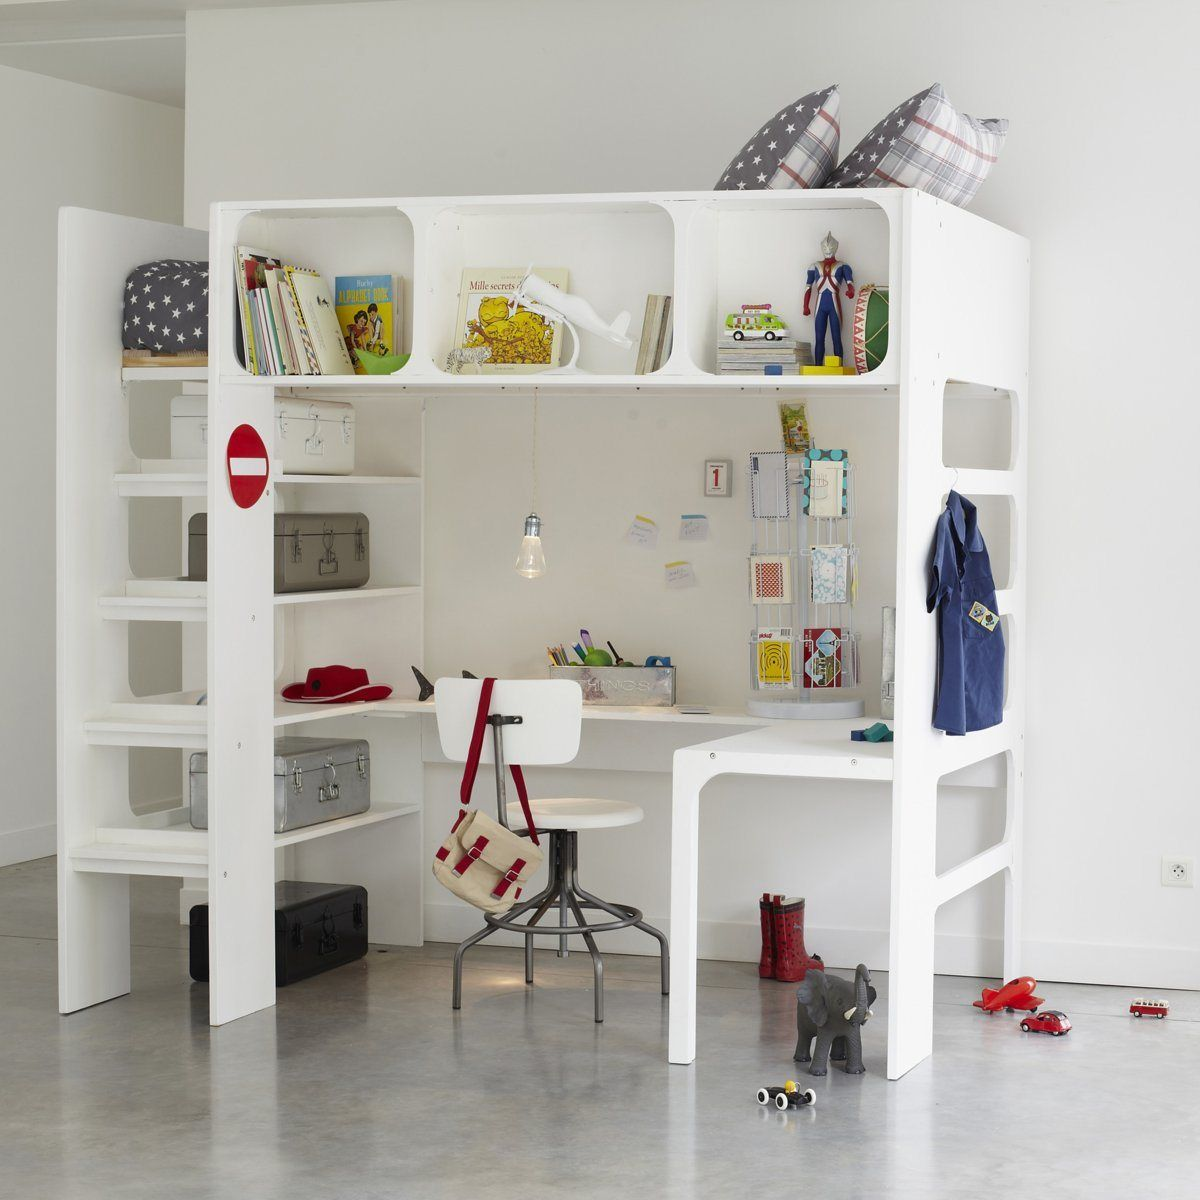 La redoute lit bureau et commode gain de place bcn amenagement int - Lit superpose gain de place ...